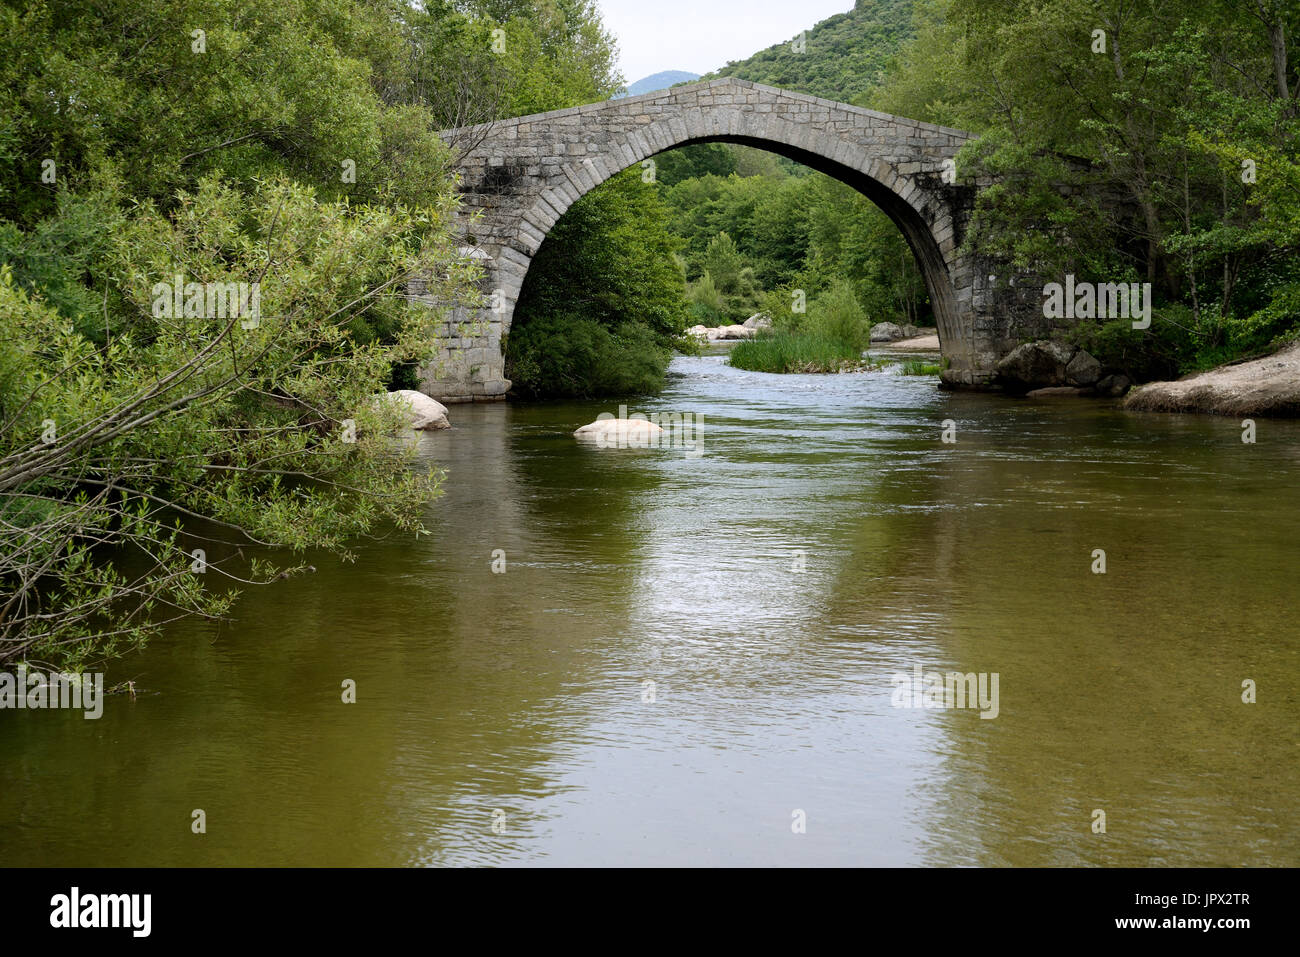 Genoese bridge of the thirteenth century on the Rizzanese - Corse France - Stock Image